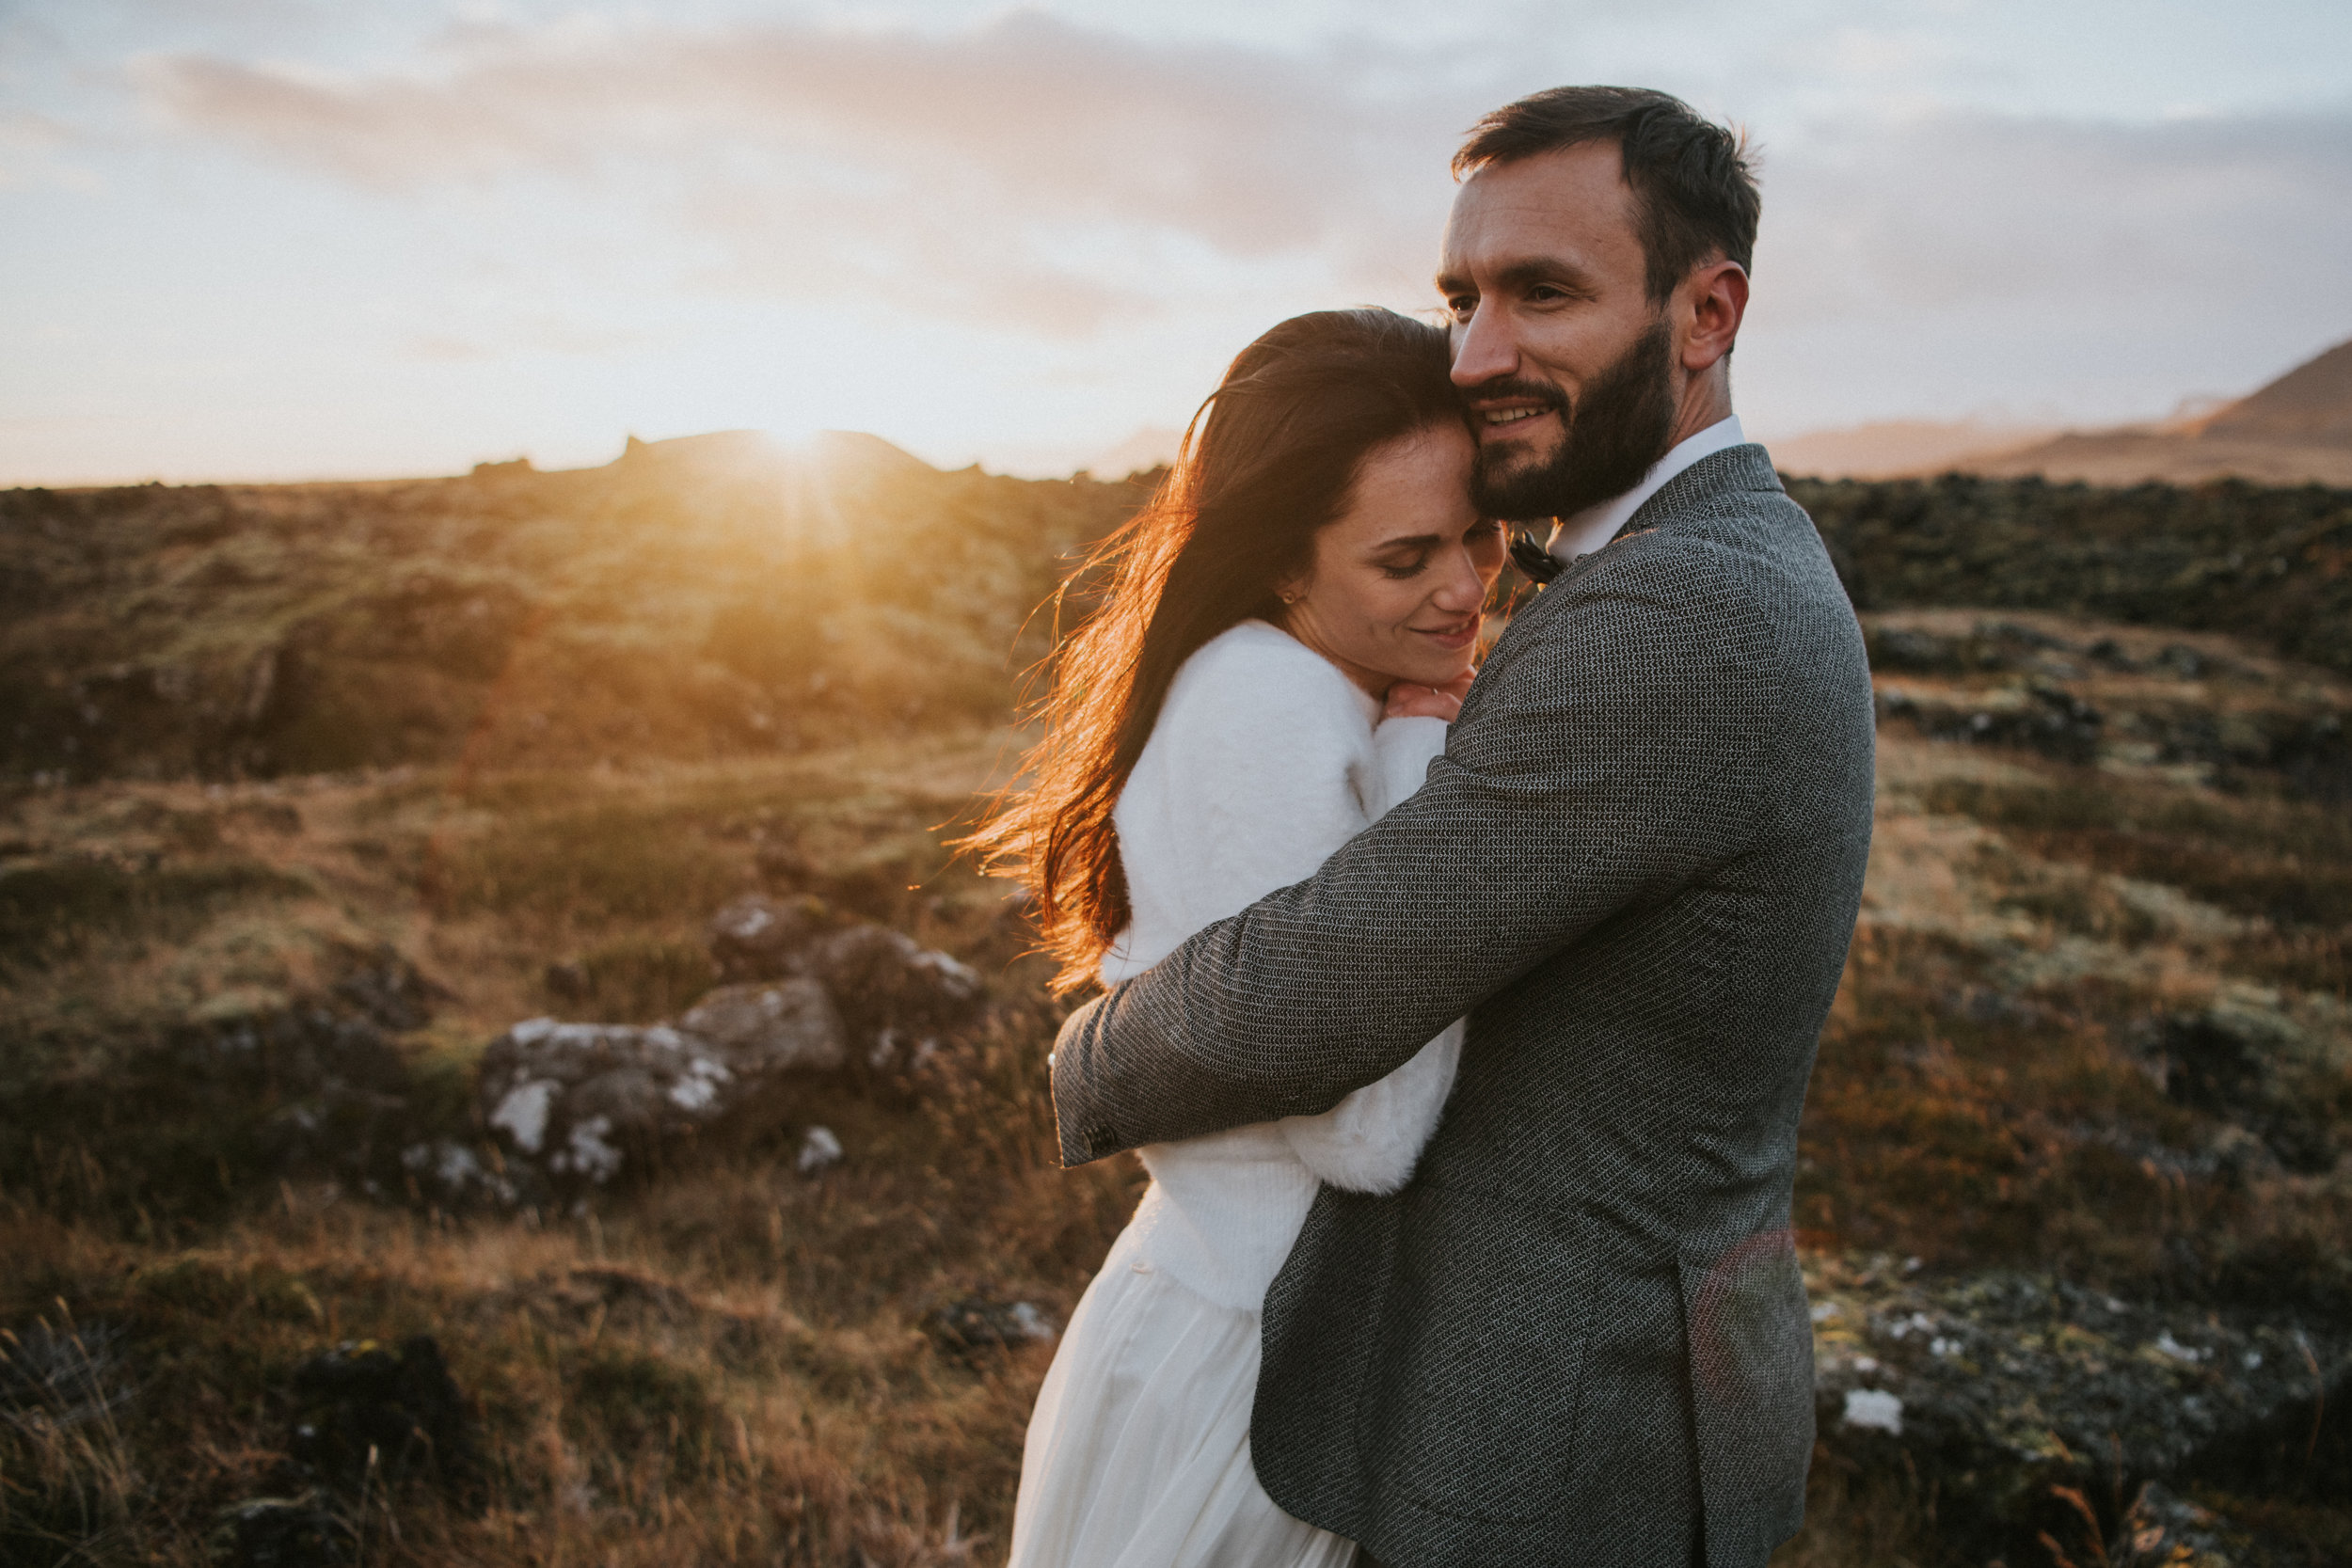 Natalie-Vitaly-Iceland-Elopement-Photographer-Videographer-48